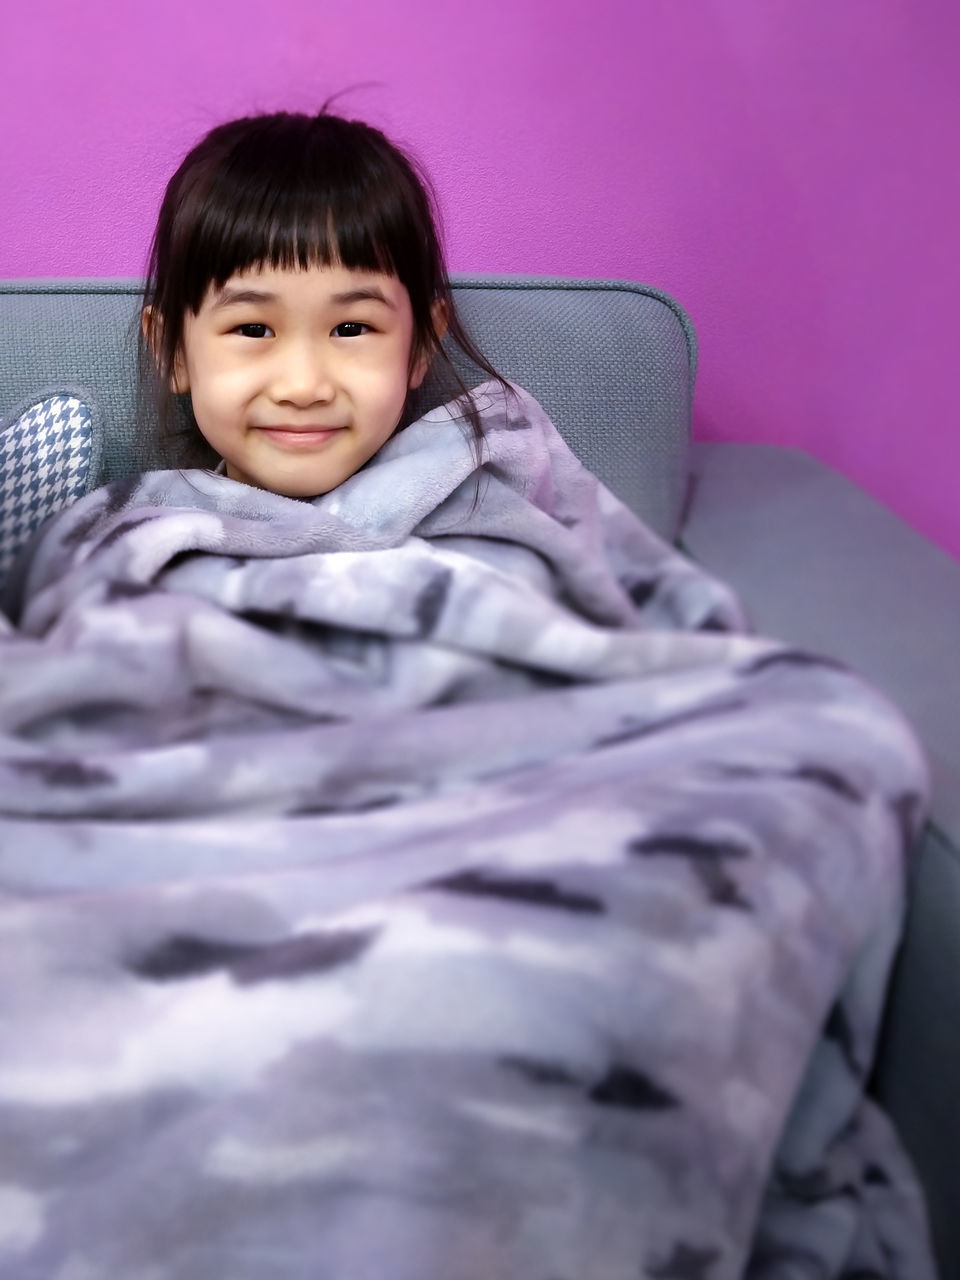 Portrait Of Smiling Girl Covered With Blanket While Sitting On Sofa At Home